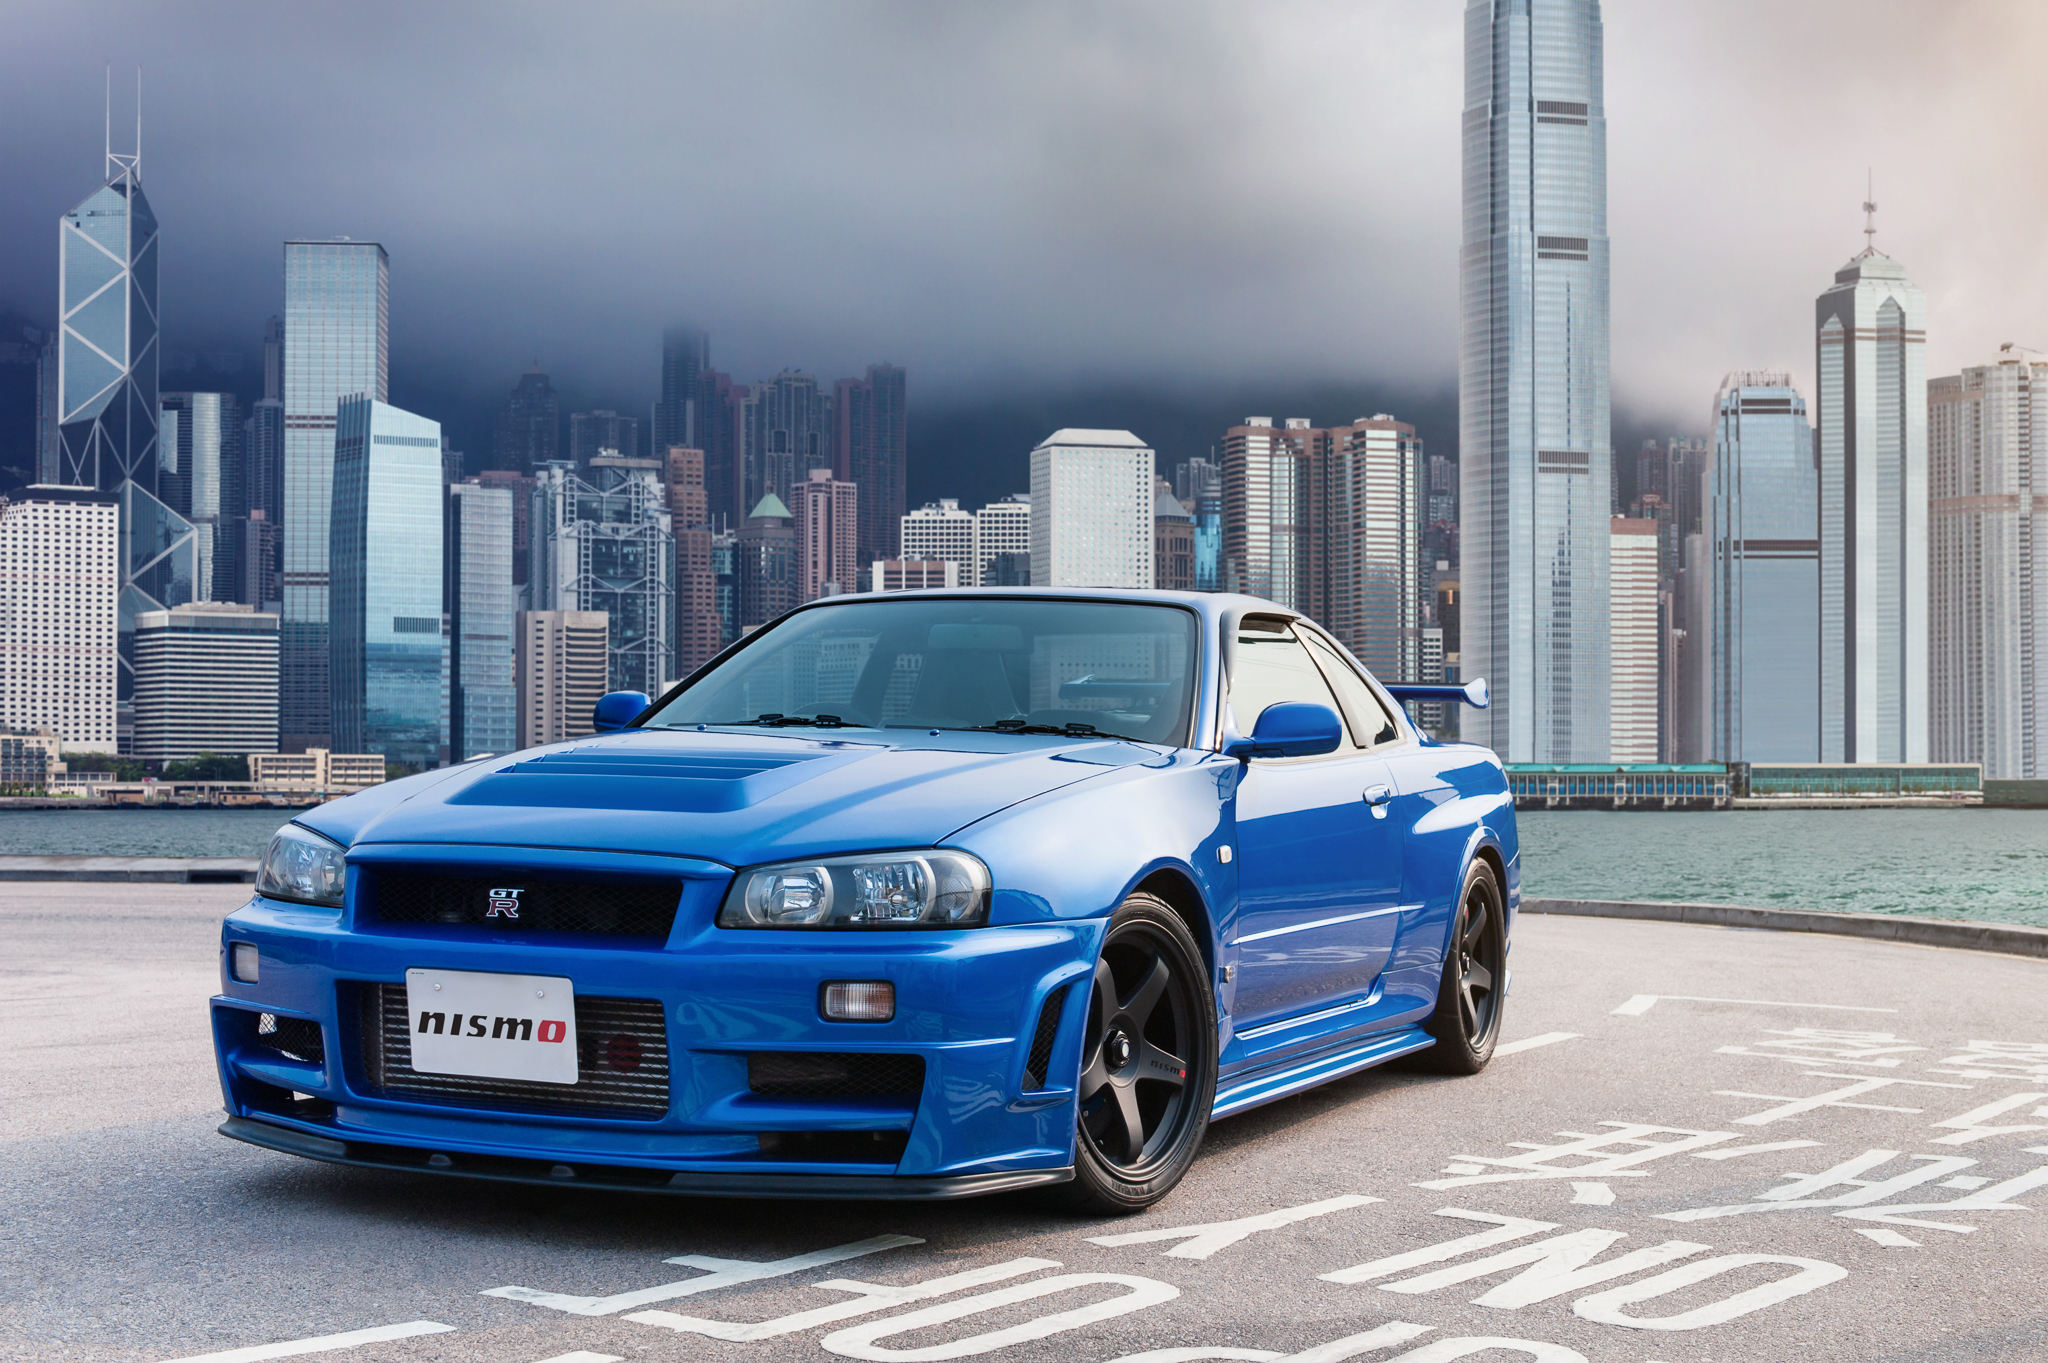 Mike Maez | Mike Maez Photography | Nissan R34 Skyline GT-R